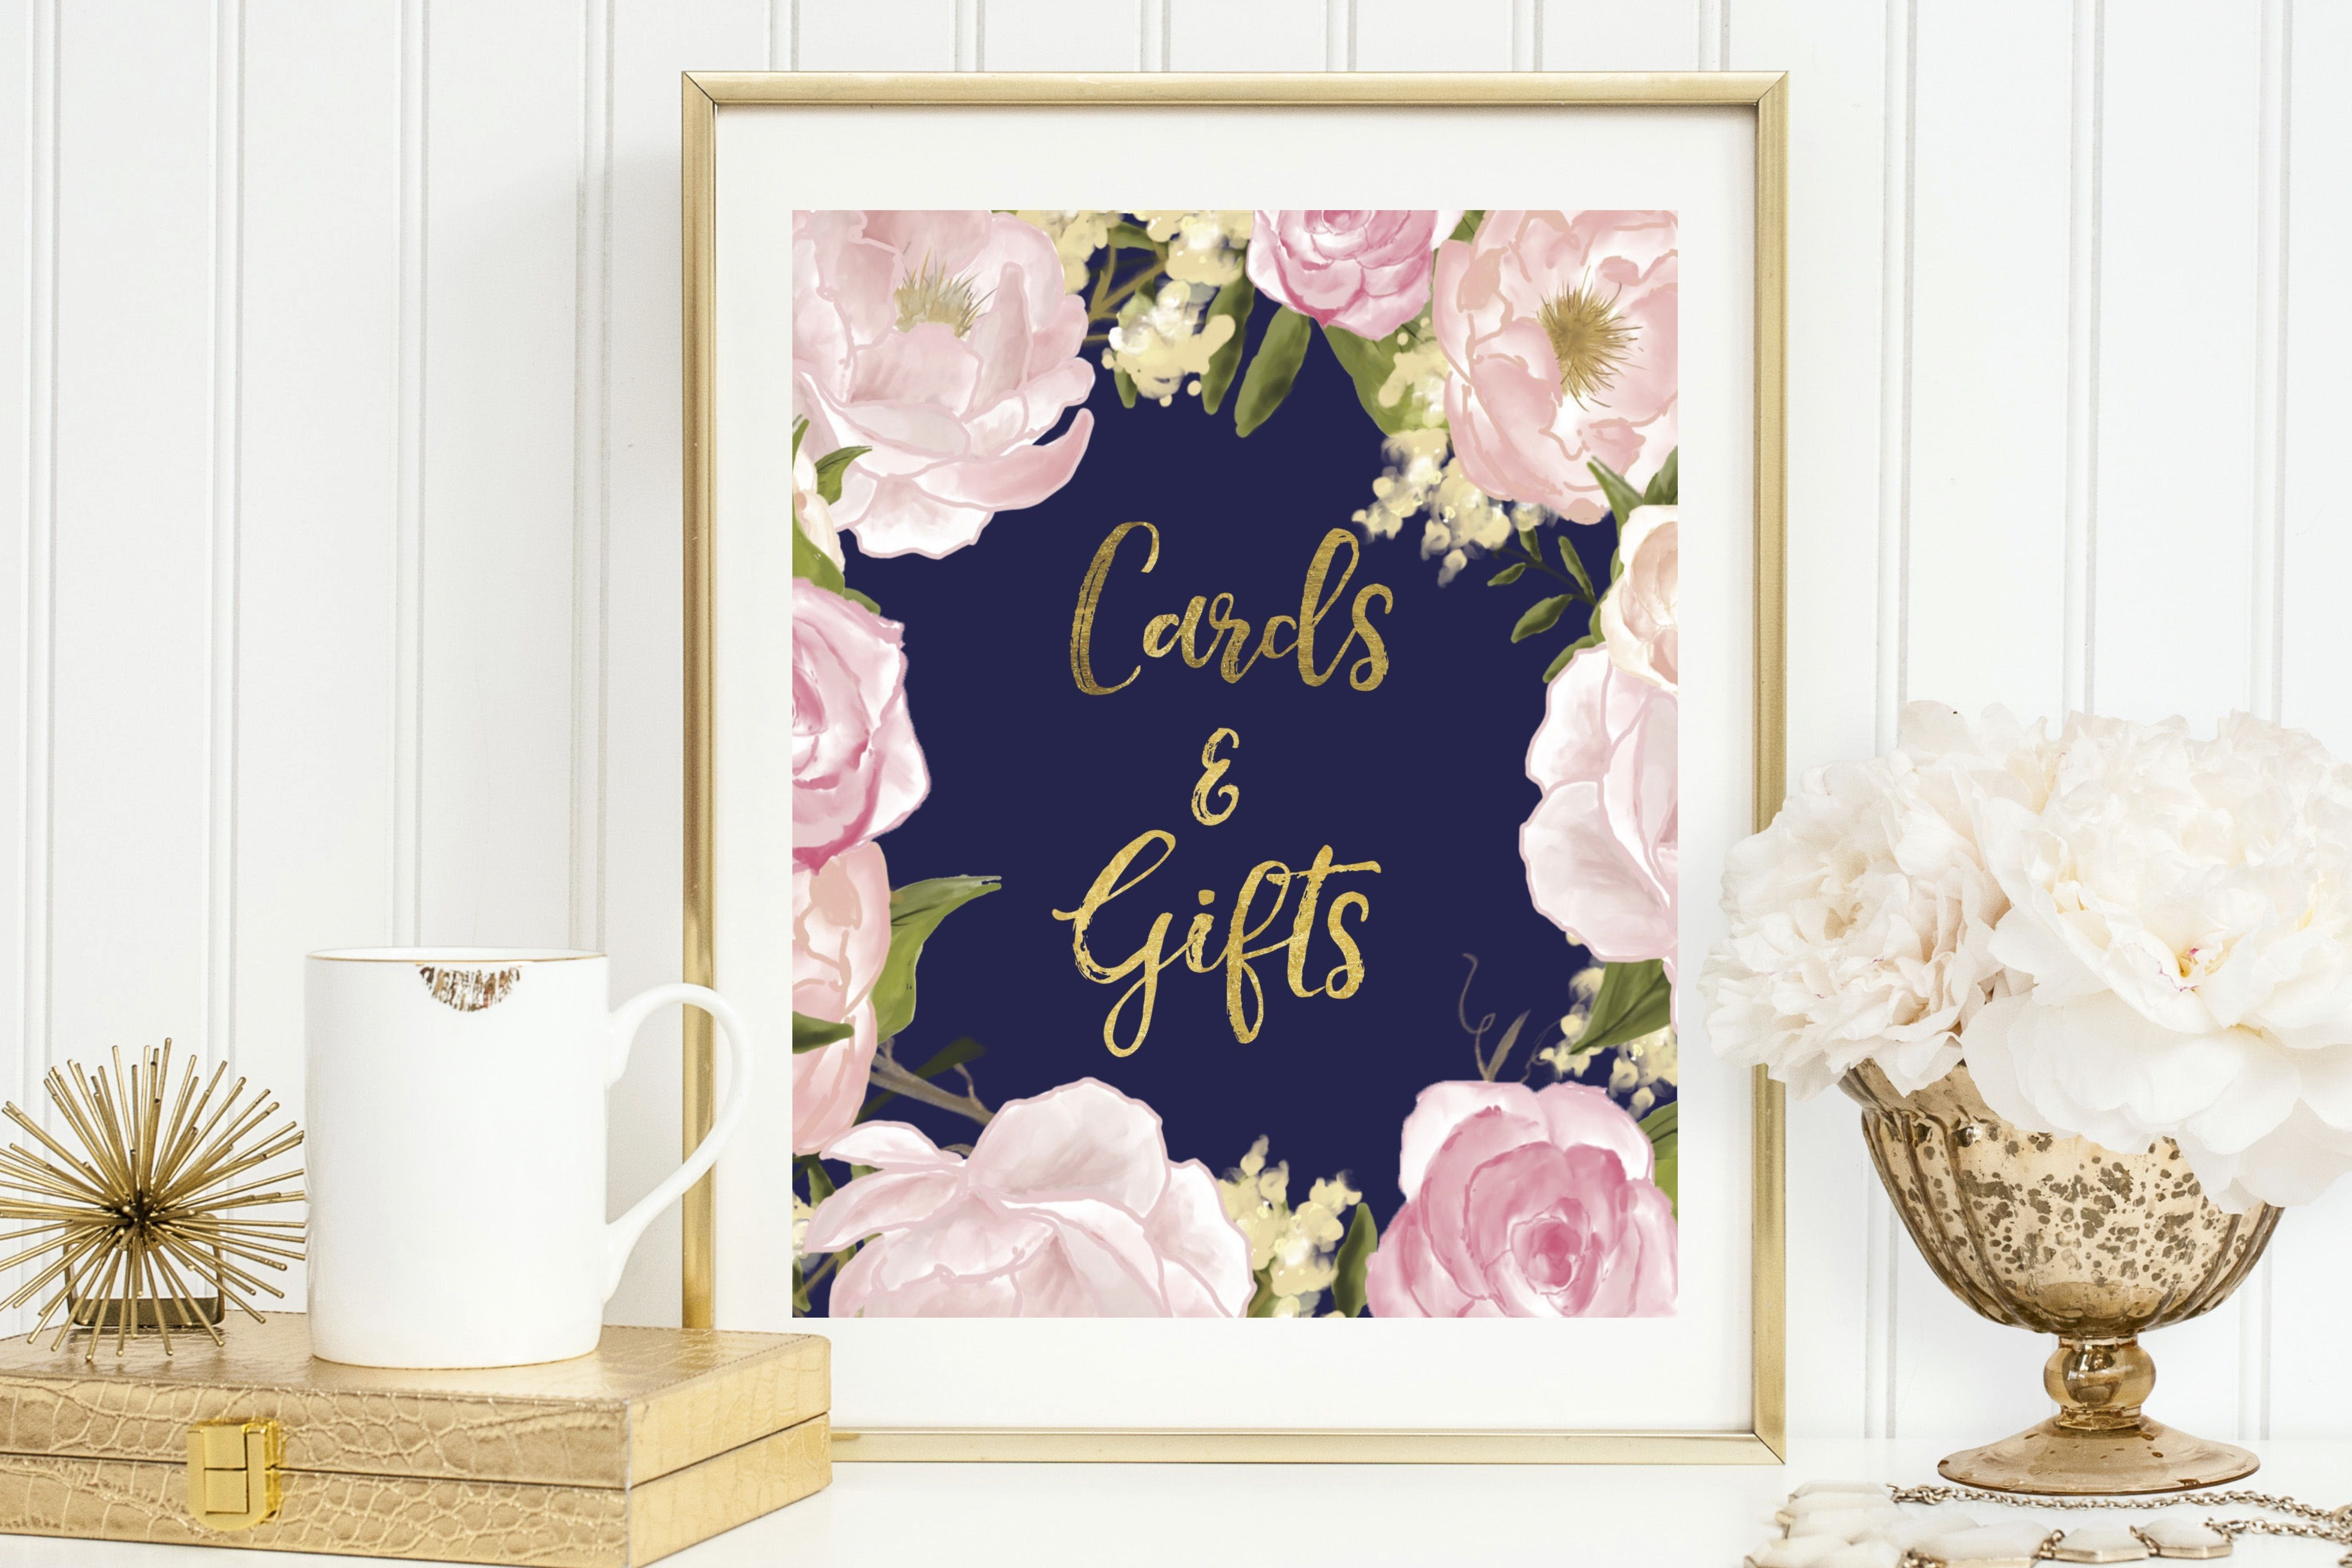 Navy + Blush + Gold Cards And Gifts Sign